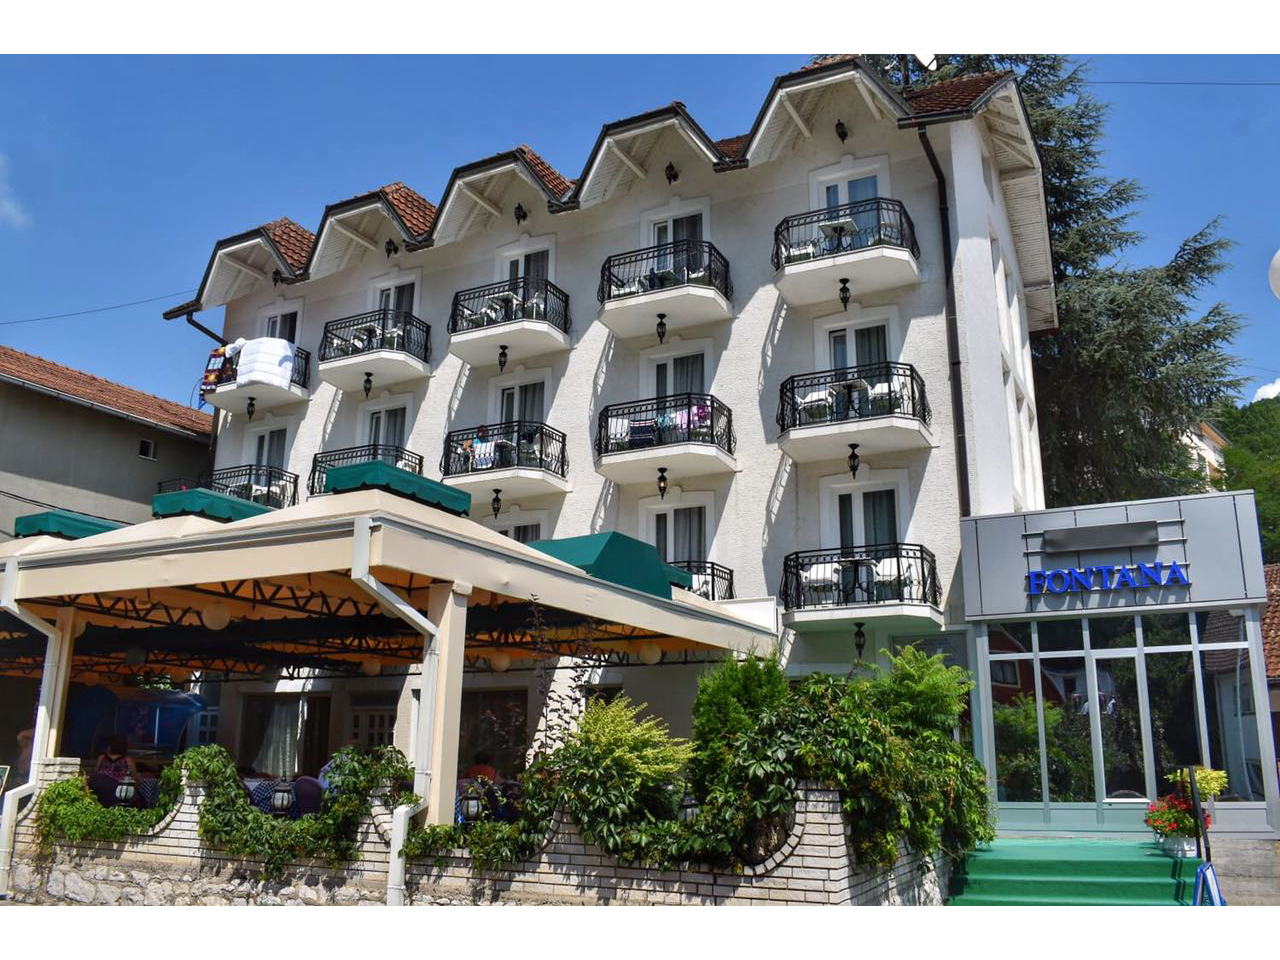 HOTEL FONTANA Pansion Gornja Trepca - Photo 1